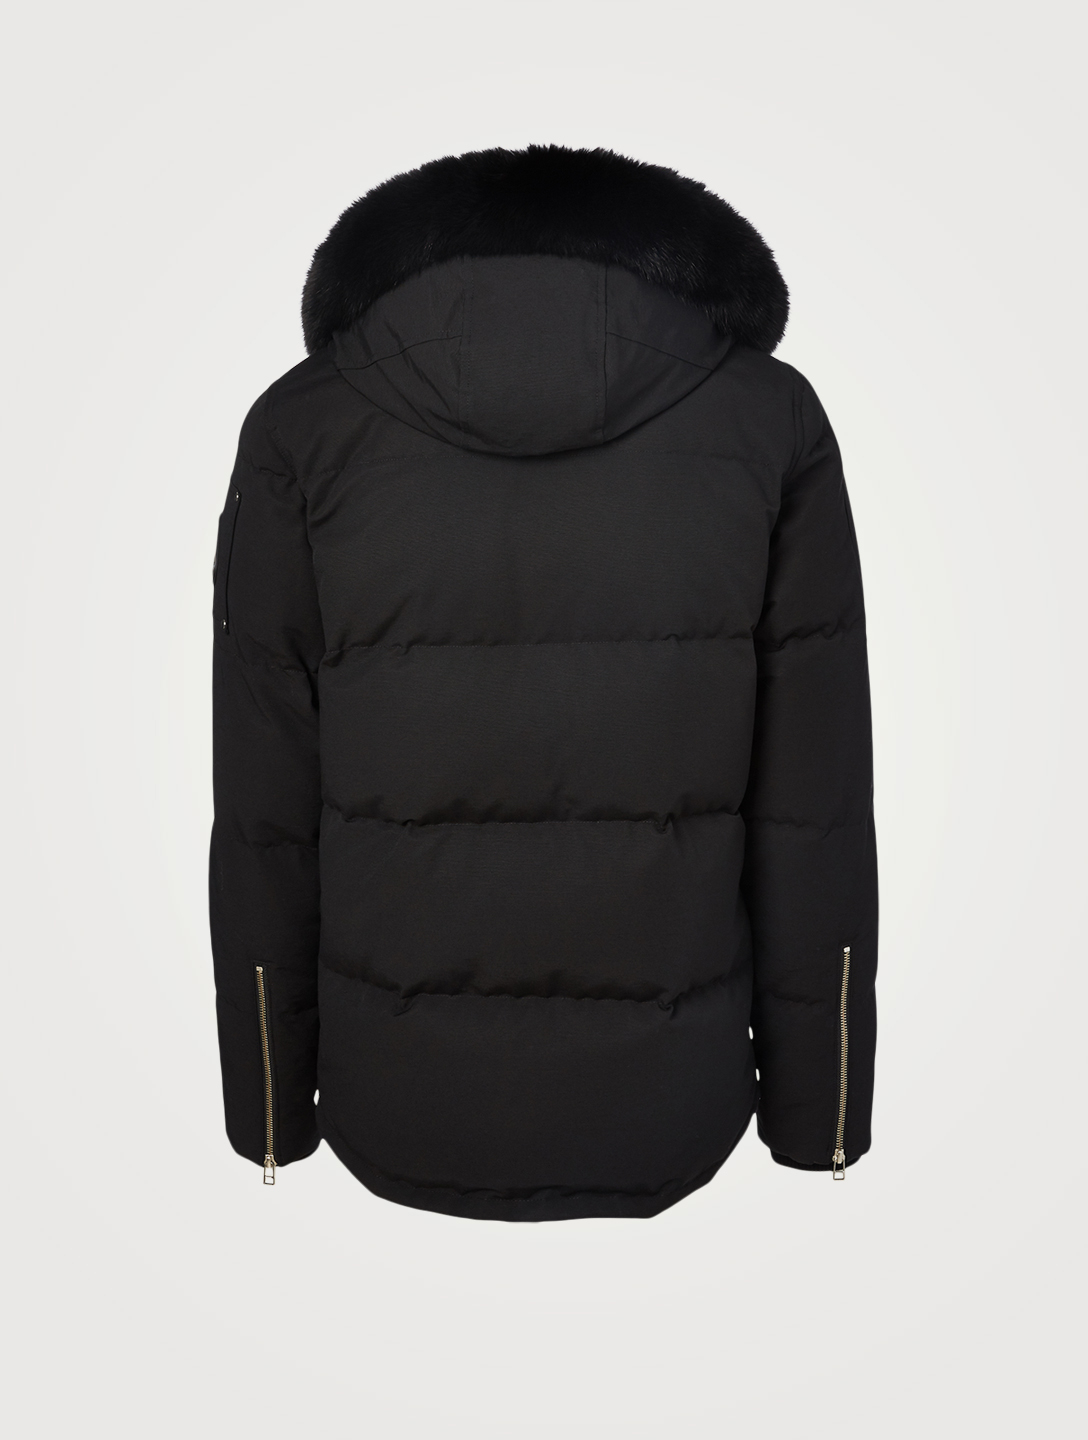 MOOSE KNUCKLES 3Q Jacket With Fur Hood Men's Black